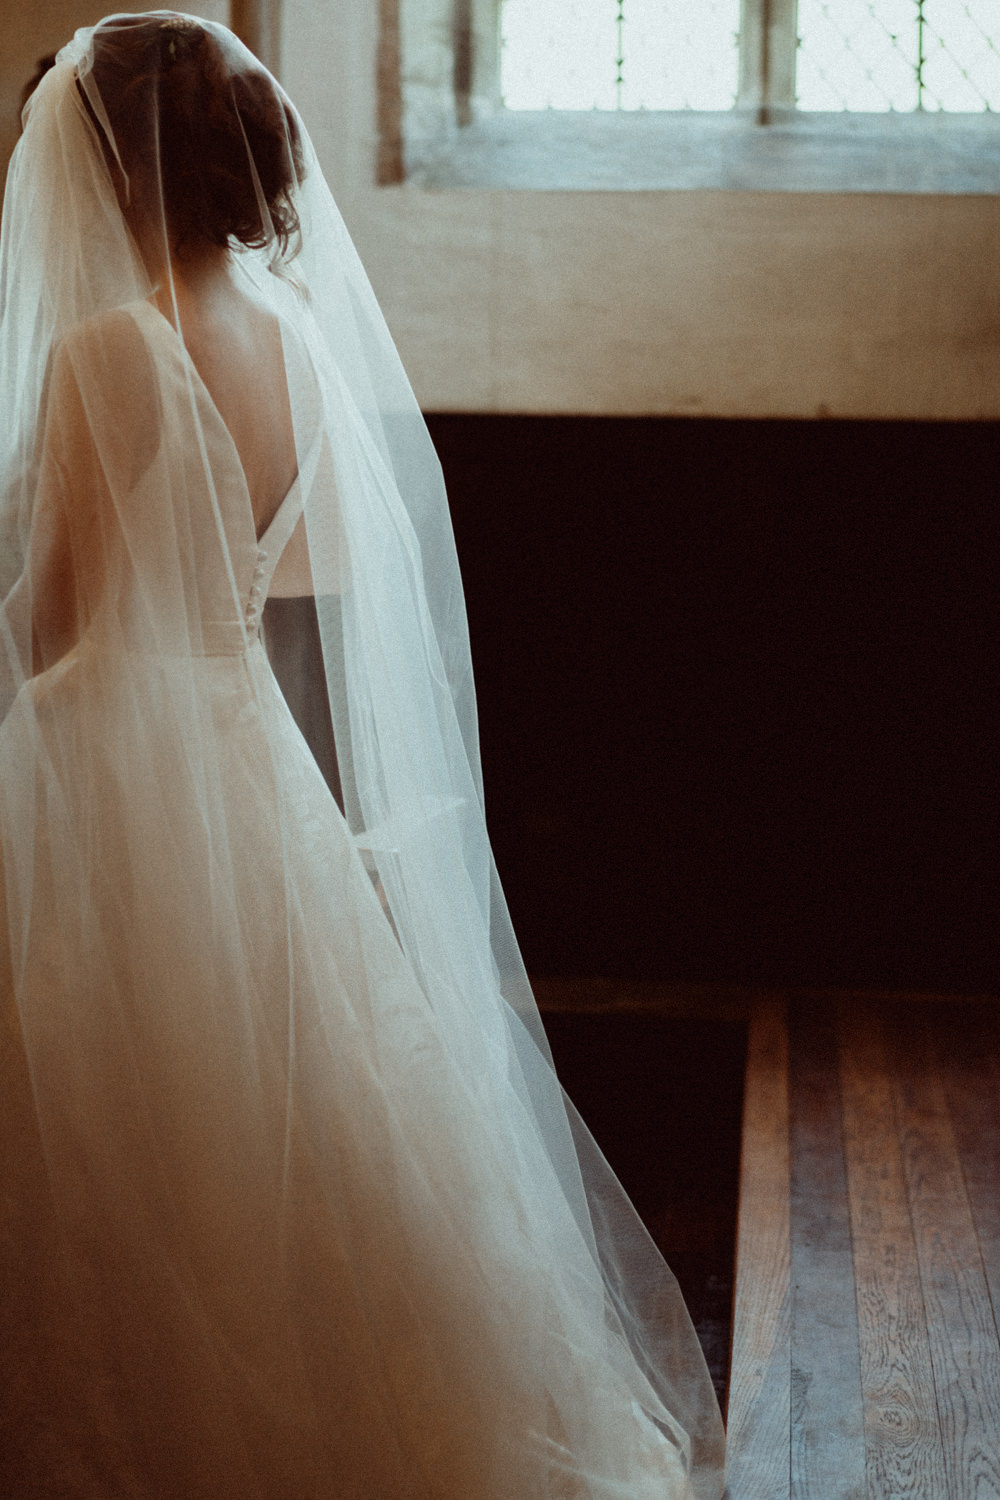 Dress Gown Bride Bridal Veil Suzanne Neville Tulle Priors Court Barn Wedding Emily & Steve Photography